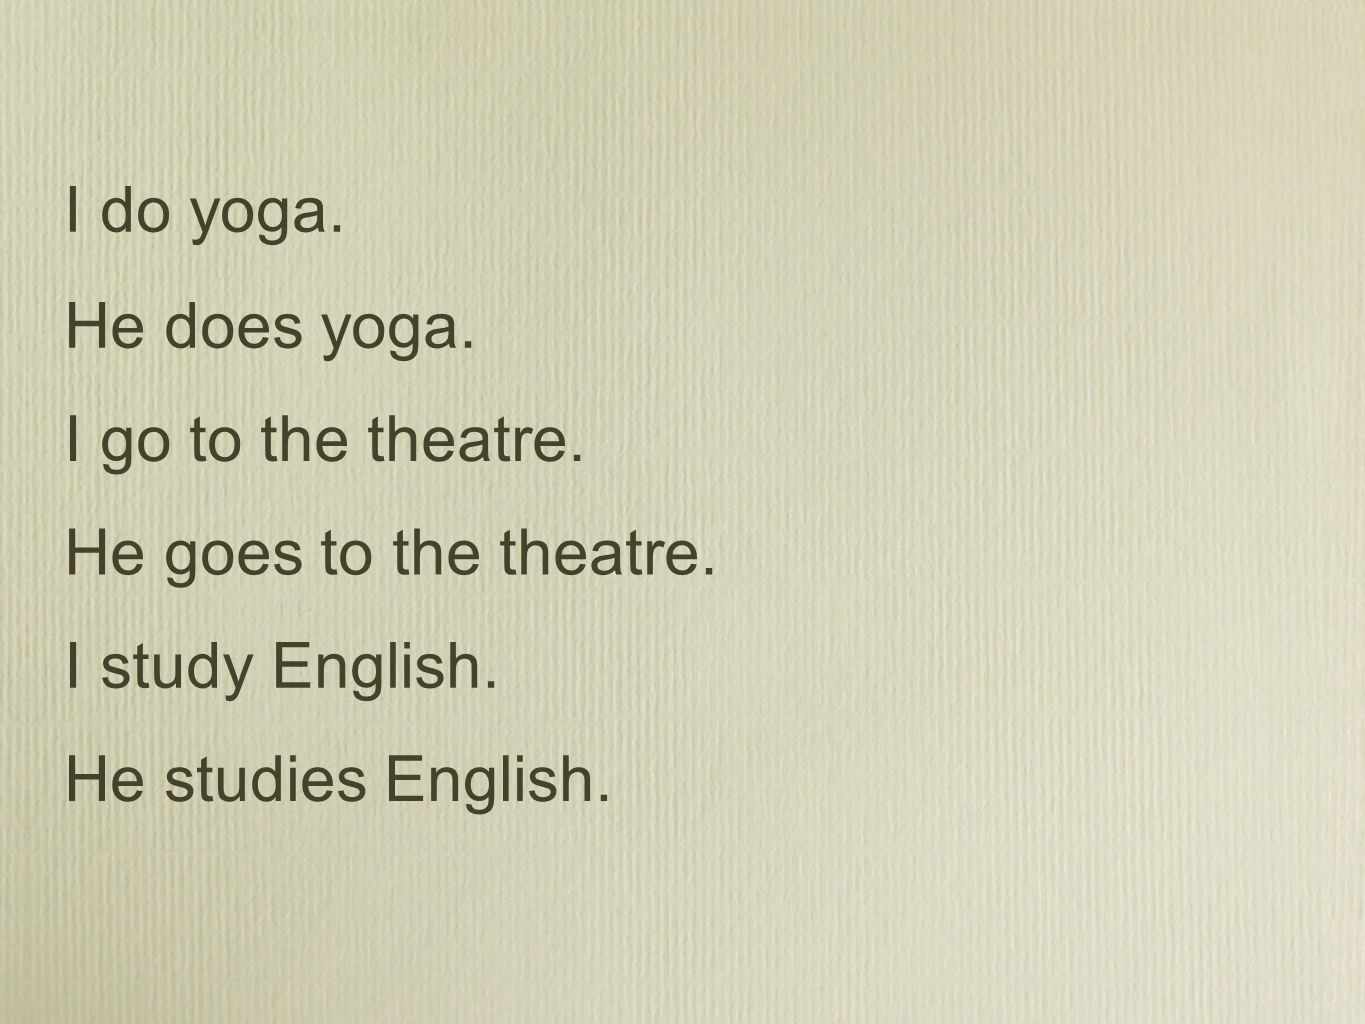 I do yoga. He does yoga. I go to the theatre. He goes to the theatre.